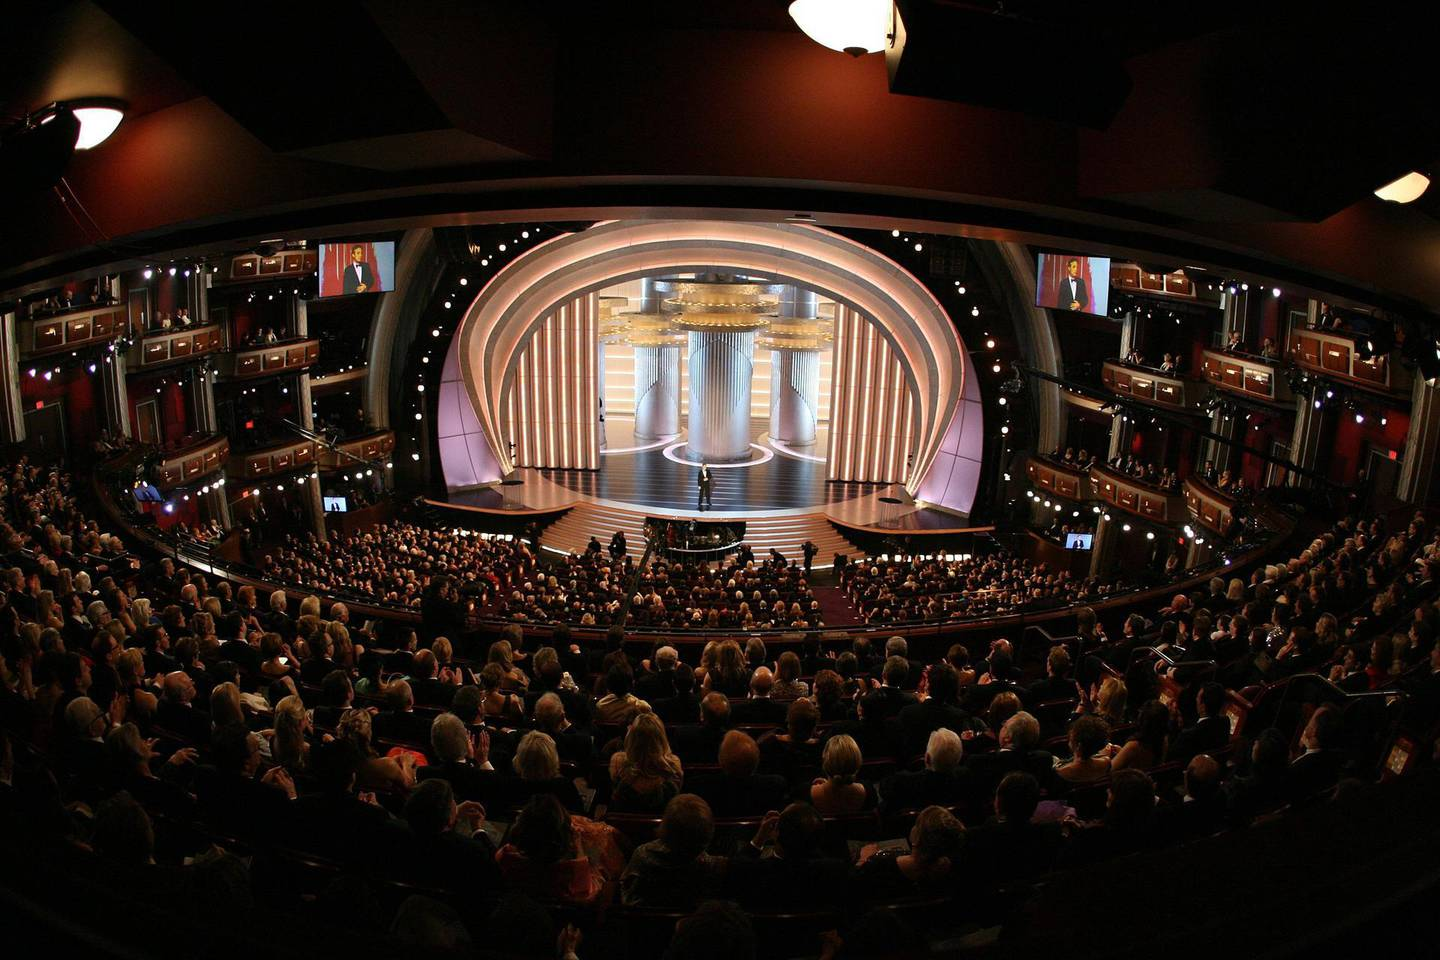 (FILES) In this file photo taken on February 24, 2008 General view of the 80th Annual Academy Awards held at the Kodak Theatre on February 24, 2008 in Hollywood, California during the 80th Annual Academy Awards at the Kodak Theater in Hollywood, California. The 93rd Oscars have been postponed by eight weeks to April 25 after the coronavirus pandemic shuttered movie theaters and wreaked havoc on Hollywood's release calendar, the Academy said June 15, 2020. / AFP / Gabriel BOUYS